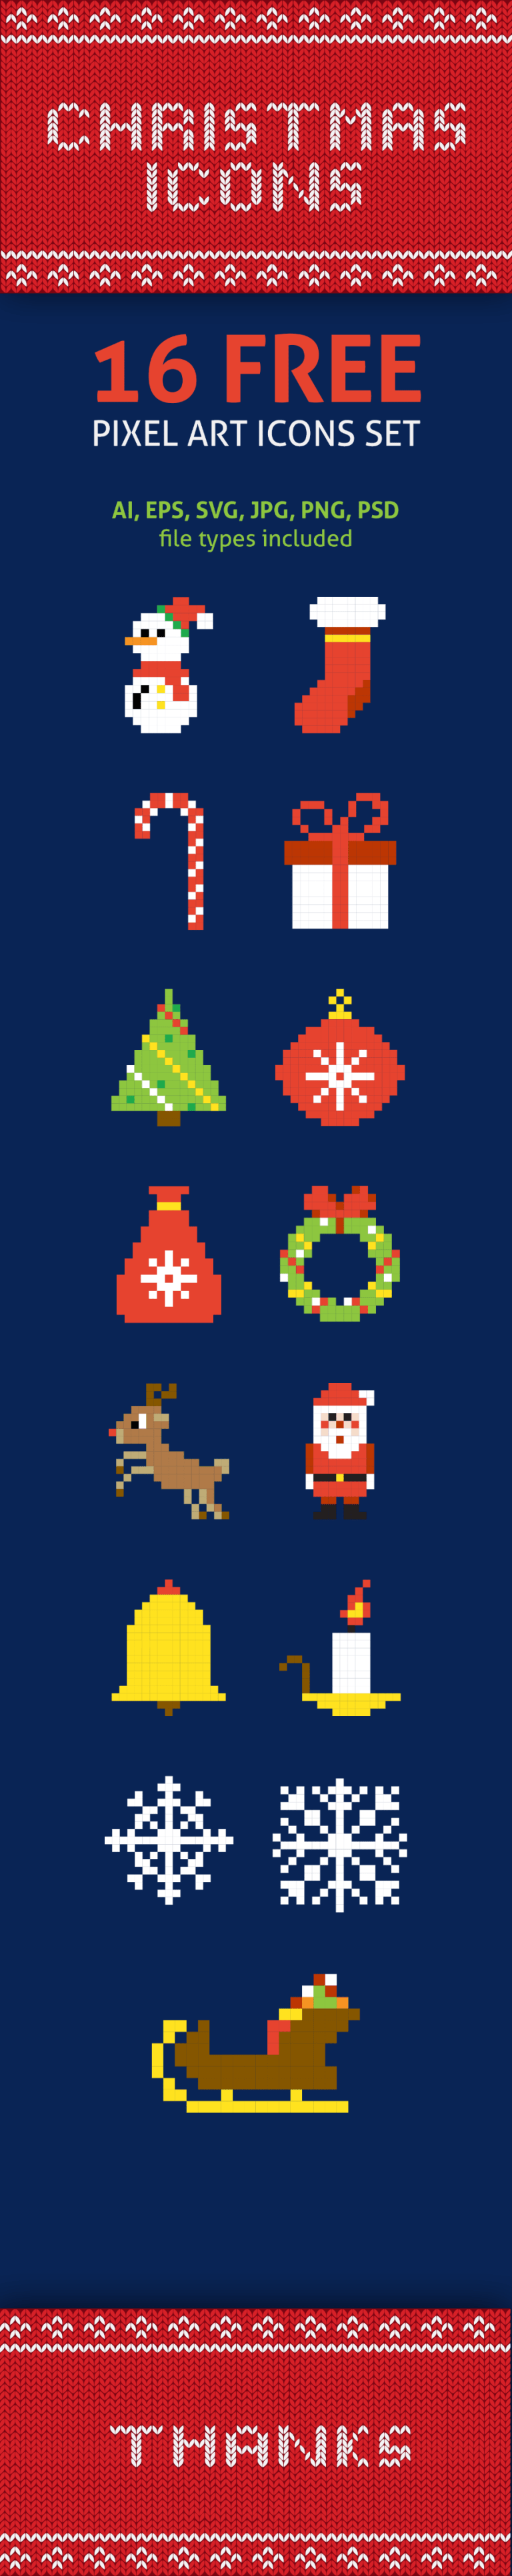 https://i1.wp.com/freedesignresources.net/wp-content/uploads/2016/11/Anna-Leni_pixel_christmas_vector_icons_241116_prev01.png?resize=768%2C3867&ssl=1